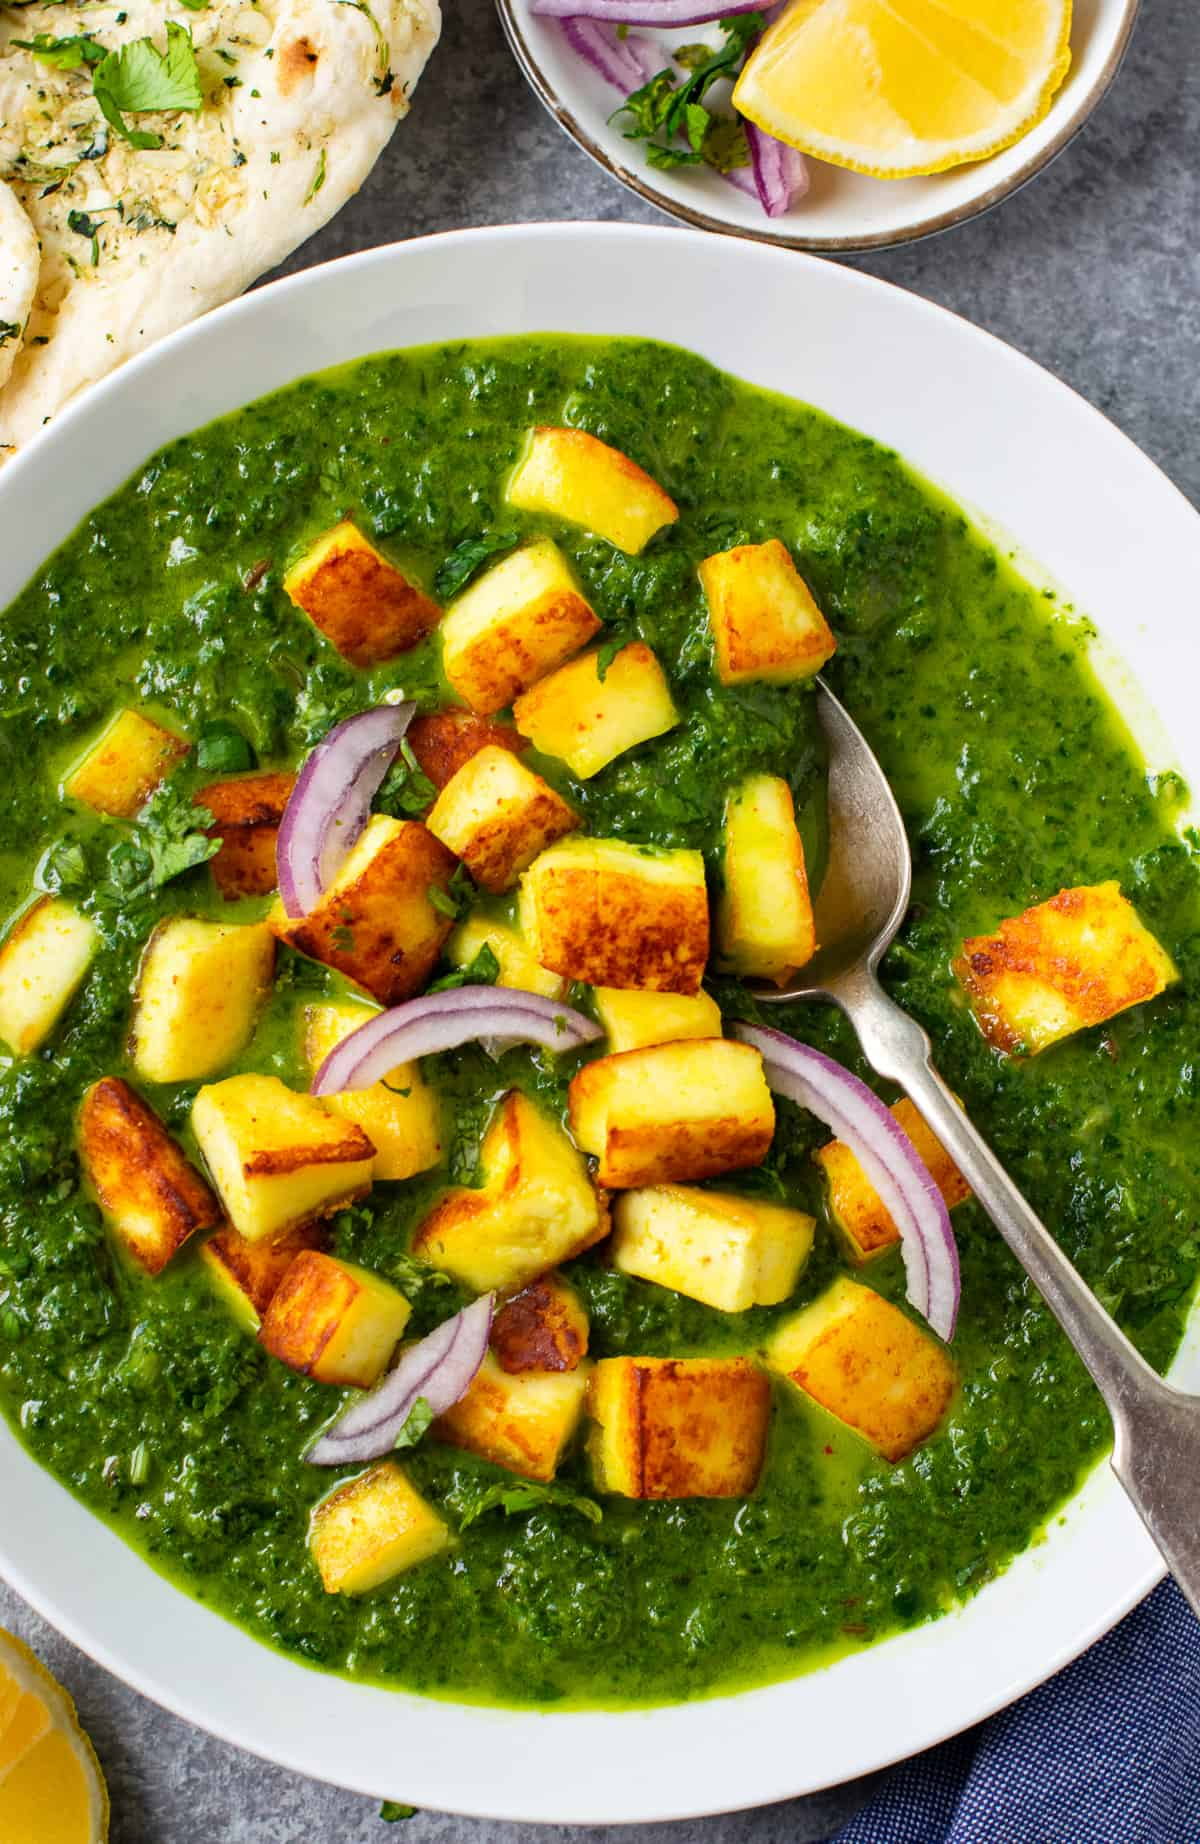 Spinach saag topped with paneer and sliced onions